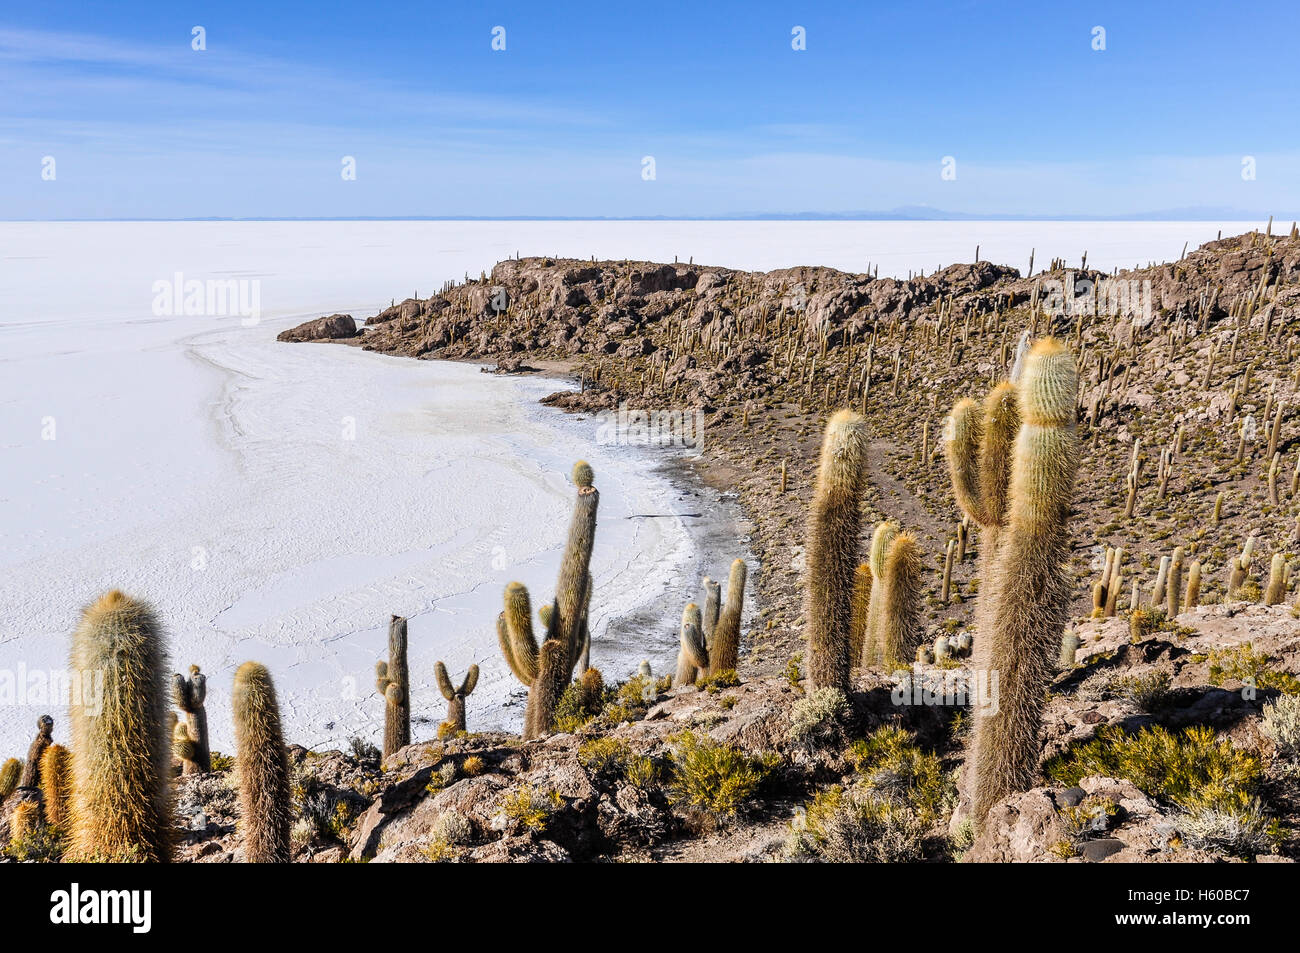 Cactus group in Isla de Pescado in Salar de Uyuni, the biggest salt flat in the world, Bolivia - Stock Image